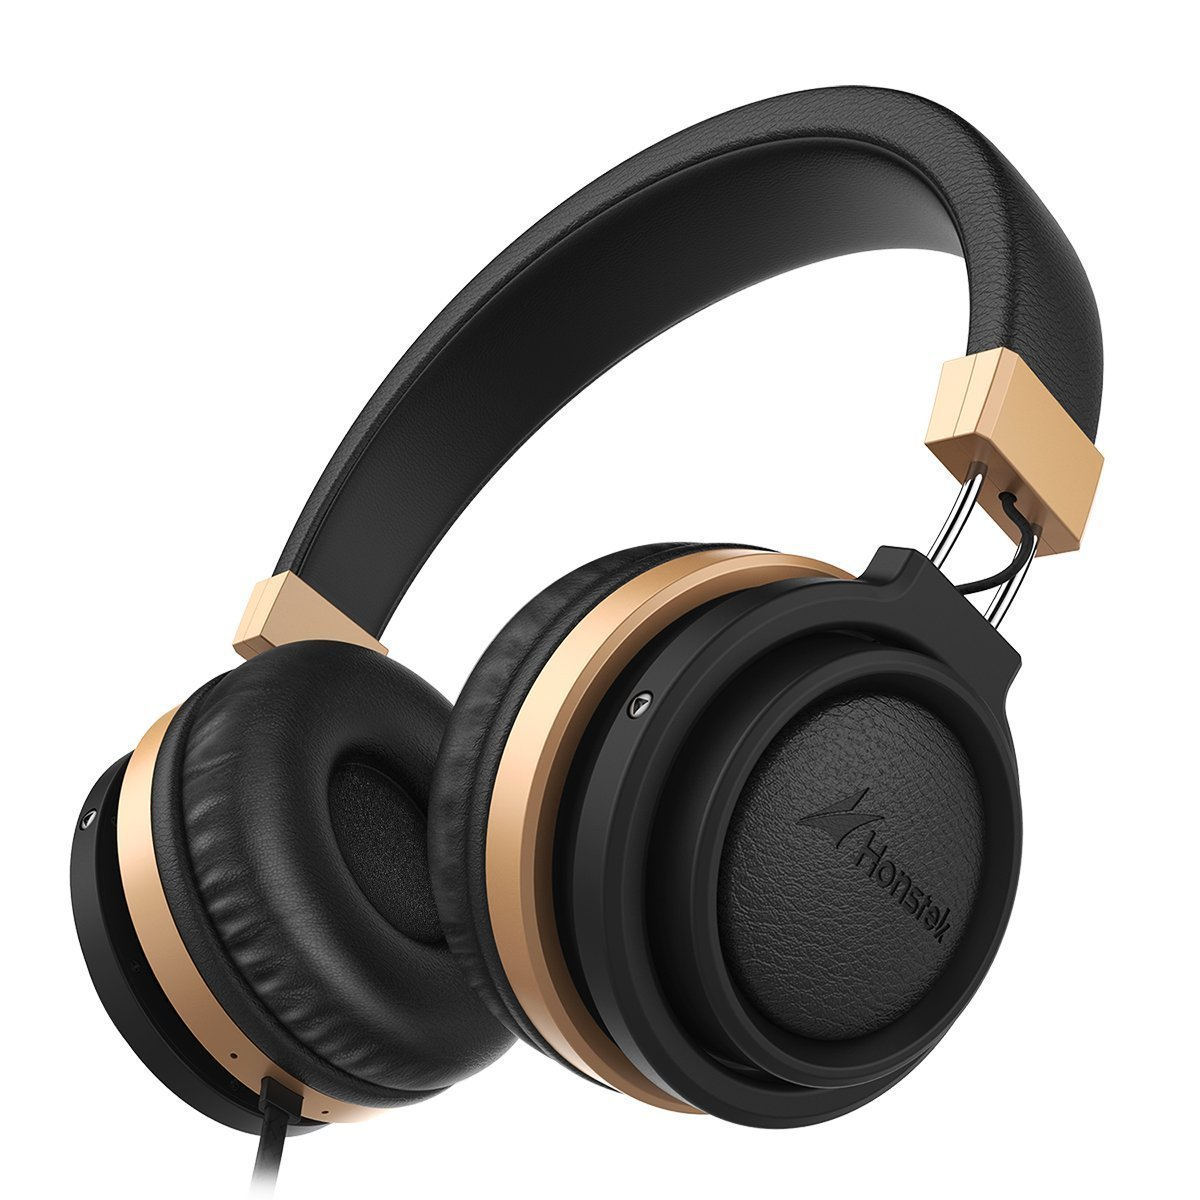 Headphones with Microphone, Honstek A5 Portable Headphones Stereo Bass Headset with Volume Control and In-line Microphone for Cellphones and PC and Laptop and Tablet (Black Gold)